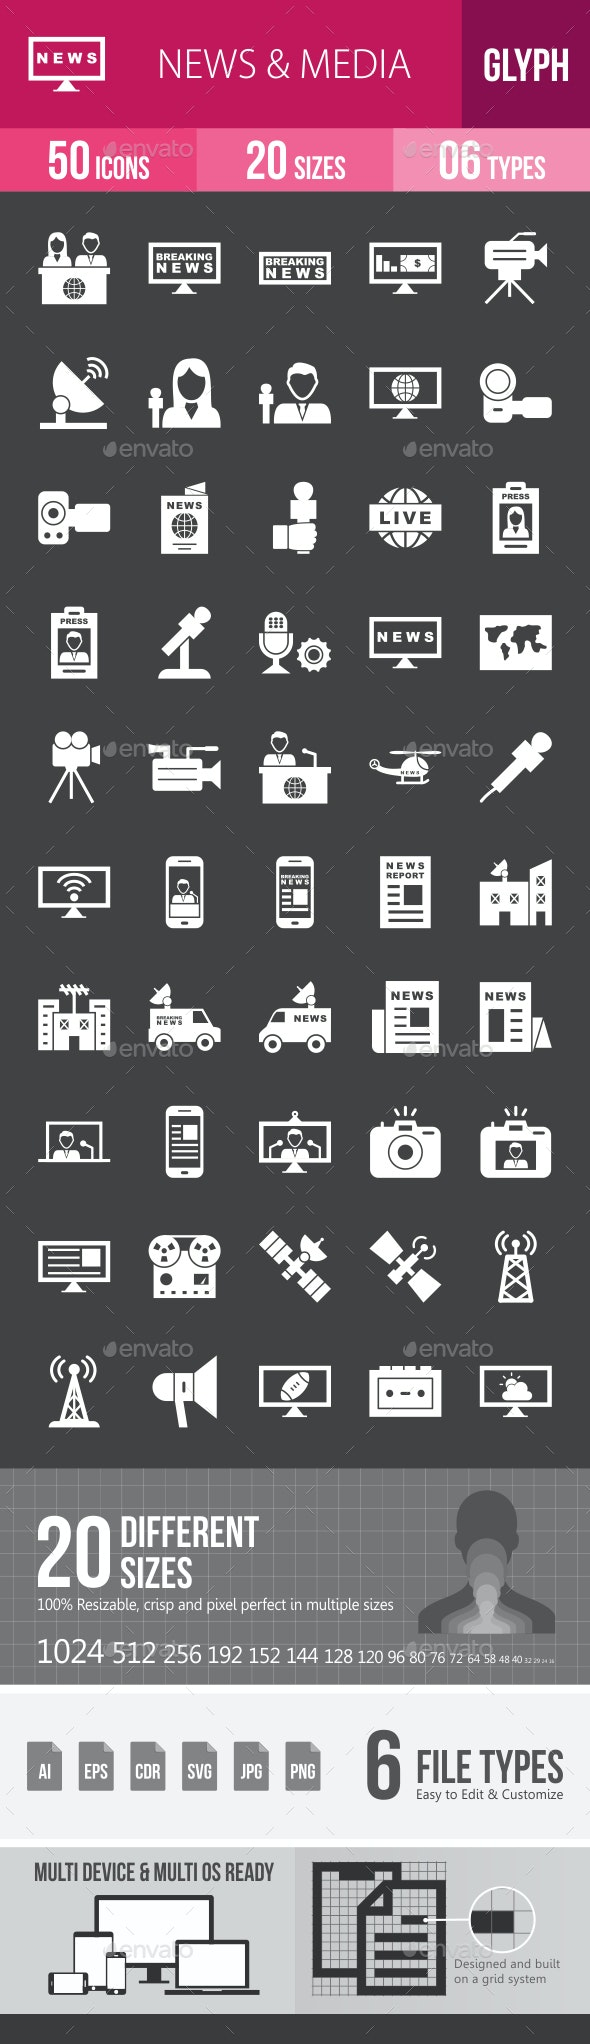 News & Media Glyph Inverted Icons - Icons